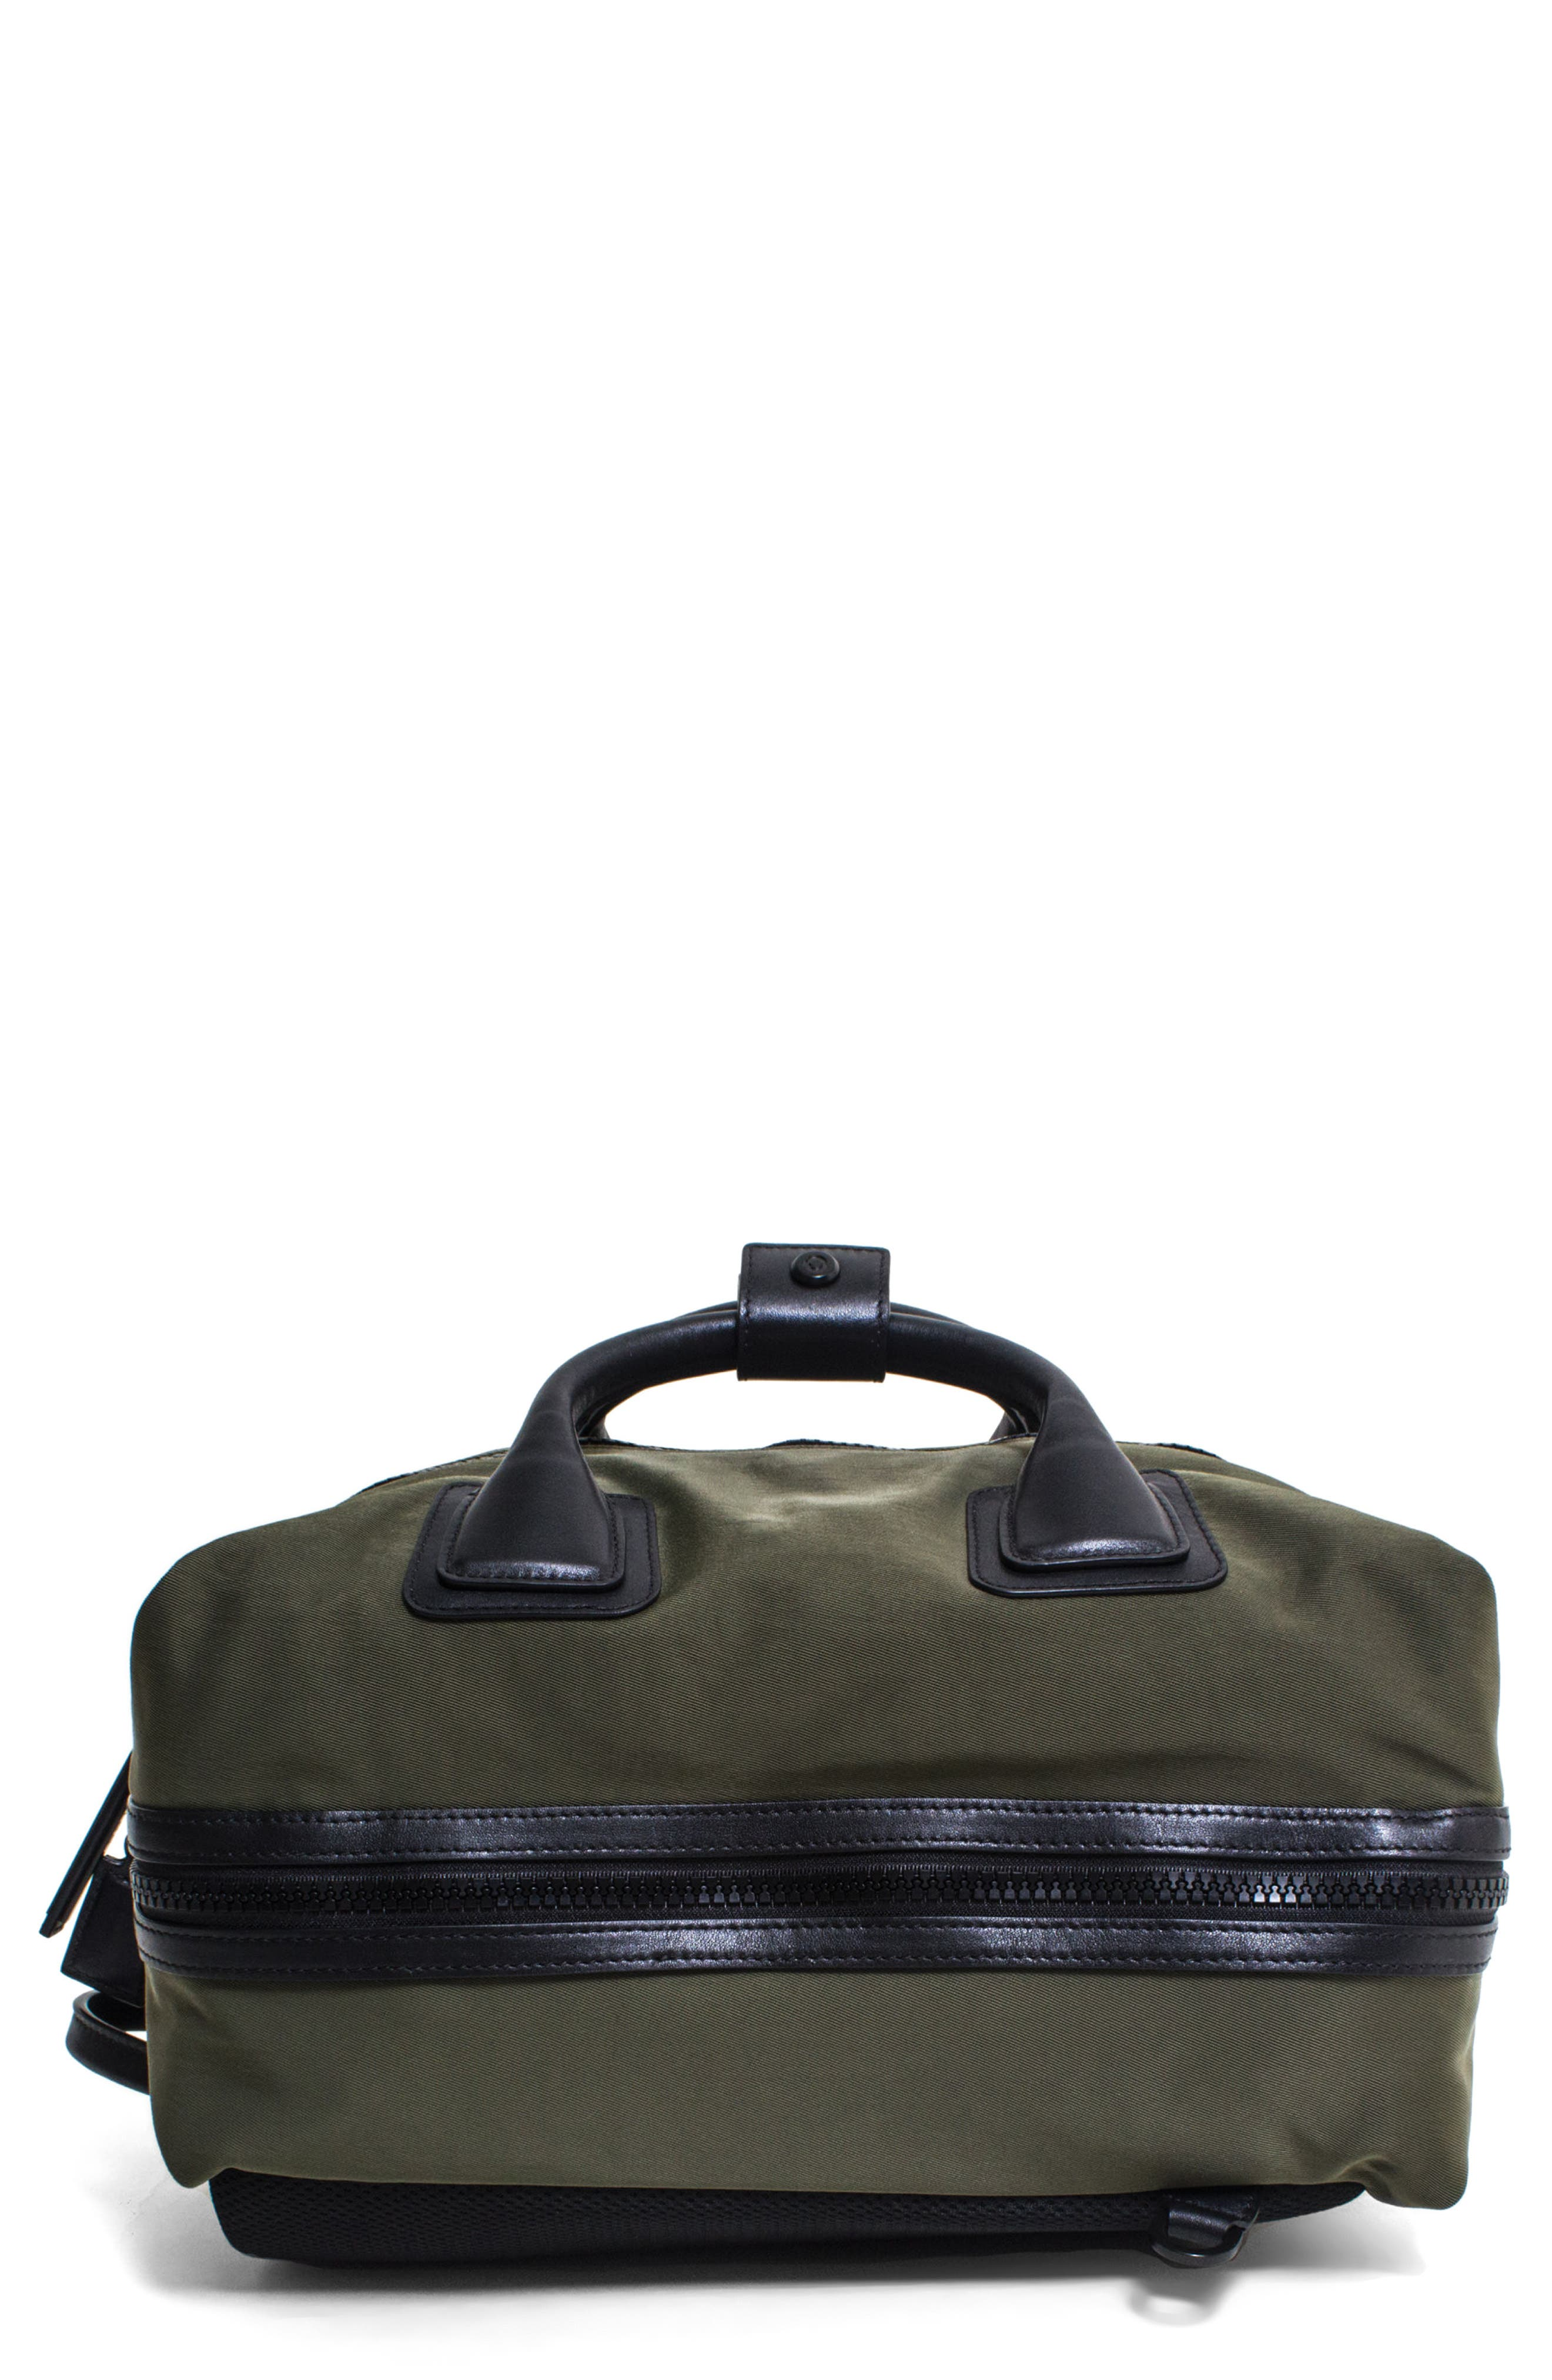 Studio 1.1 Convertible Duffel Bag,                             Main thumbnail 1, color,                             300